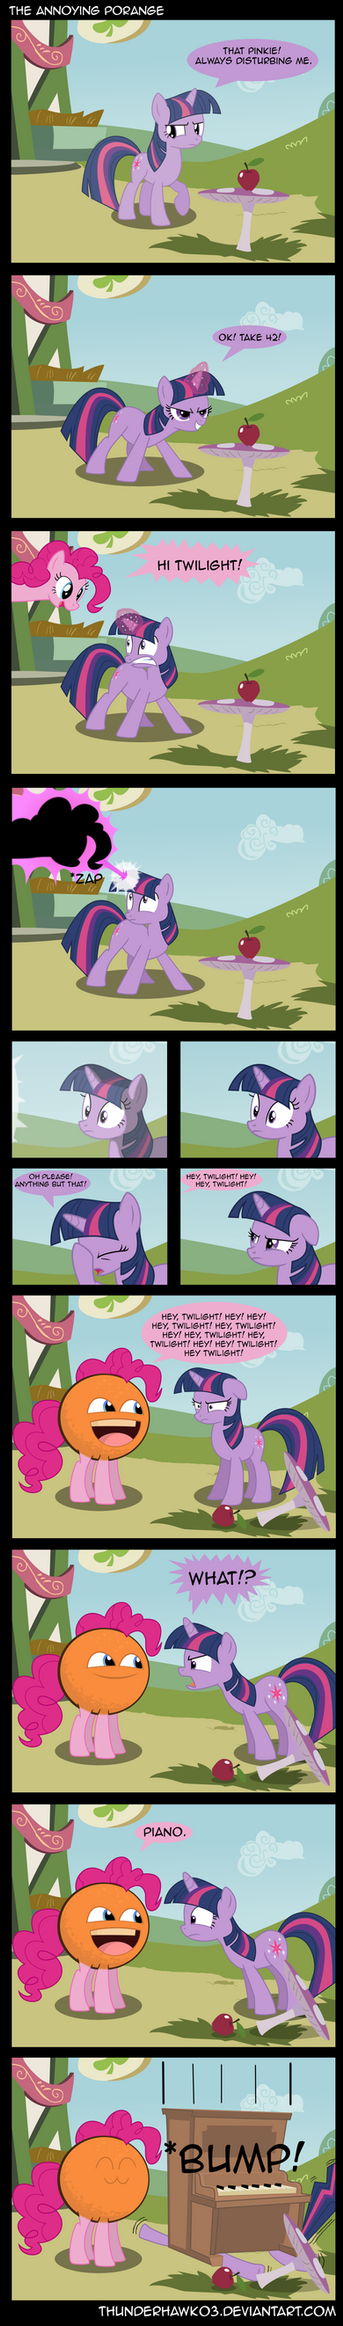 The Annoying Porange by Thunderhawk03